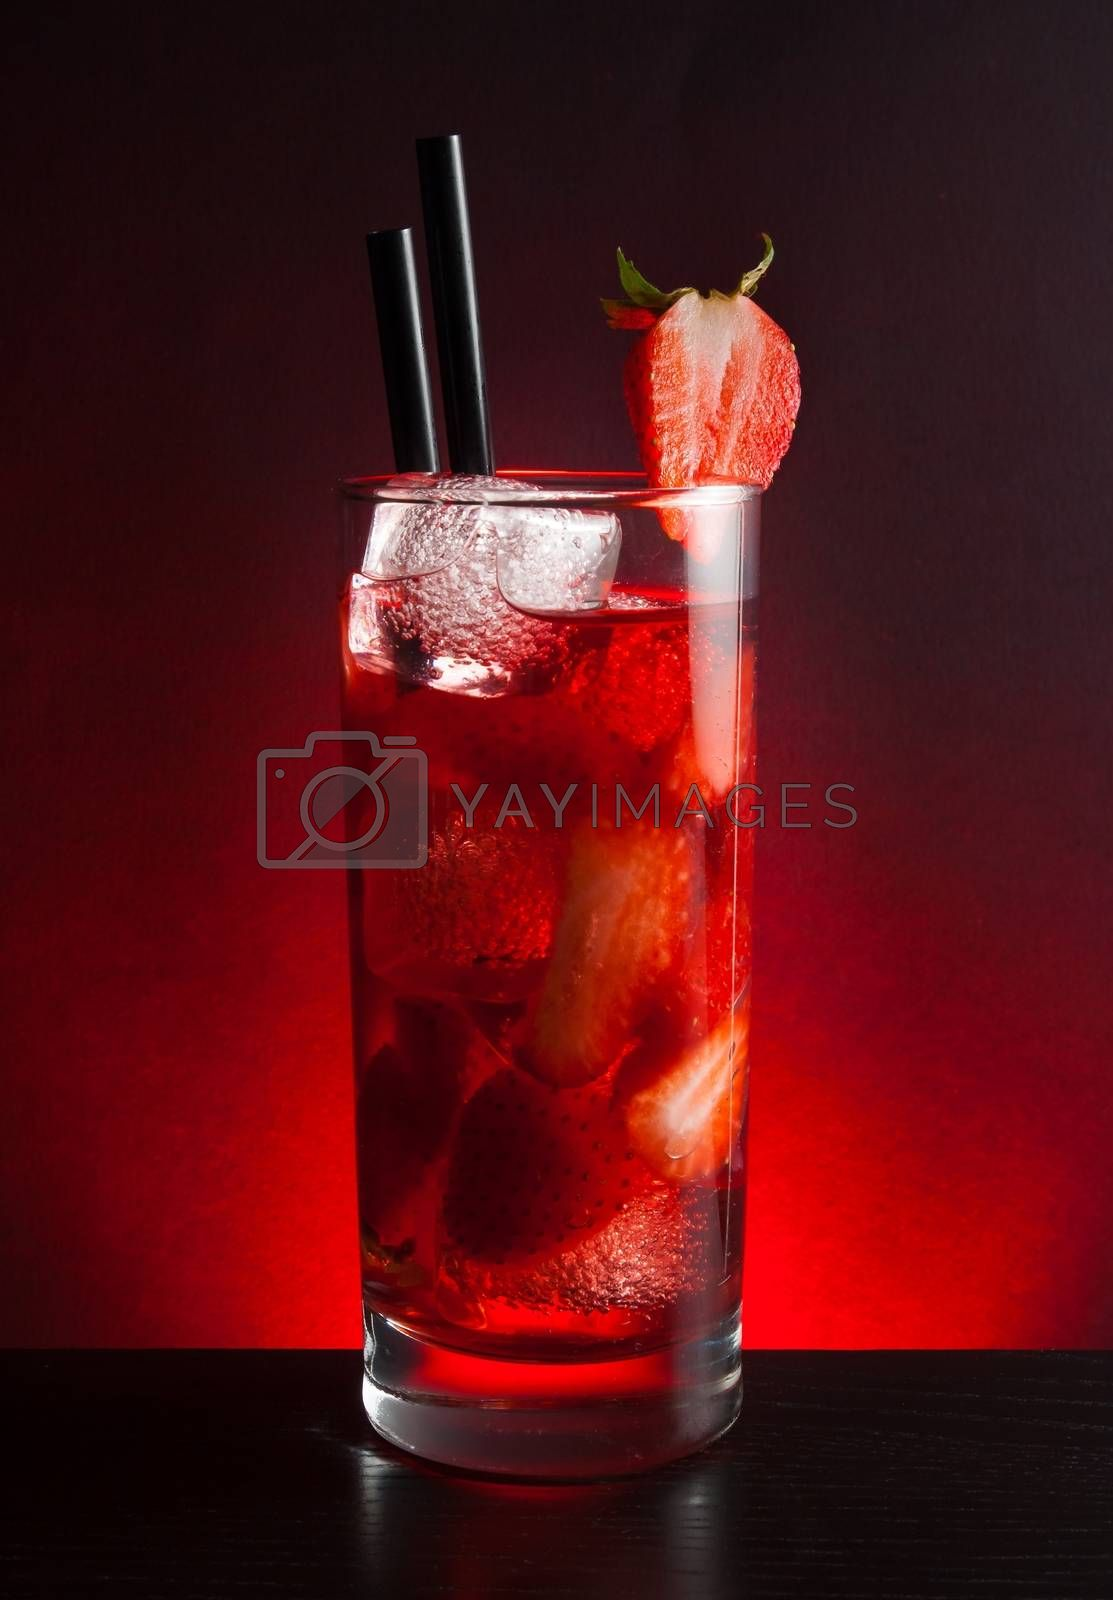 Strawberry cocktail with ice on black table  by donfiore